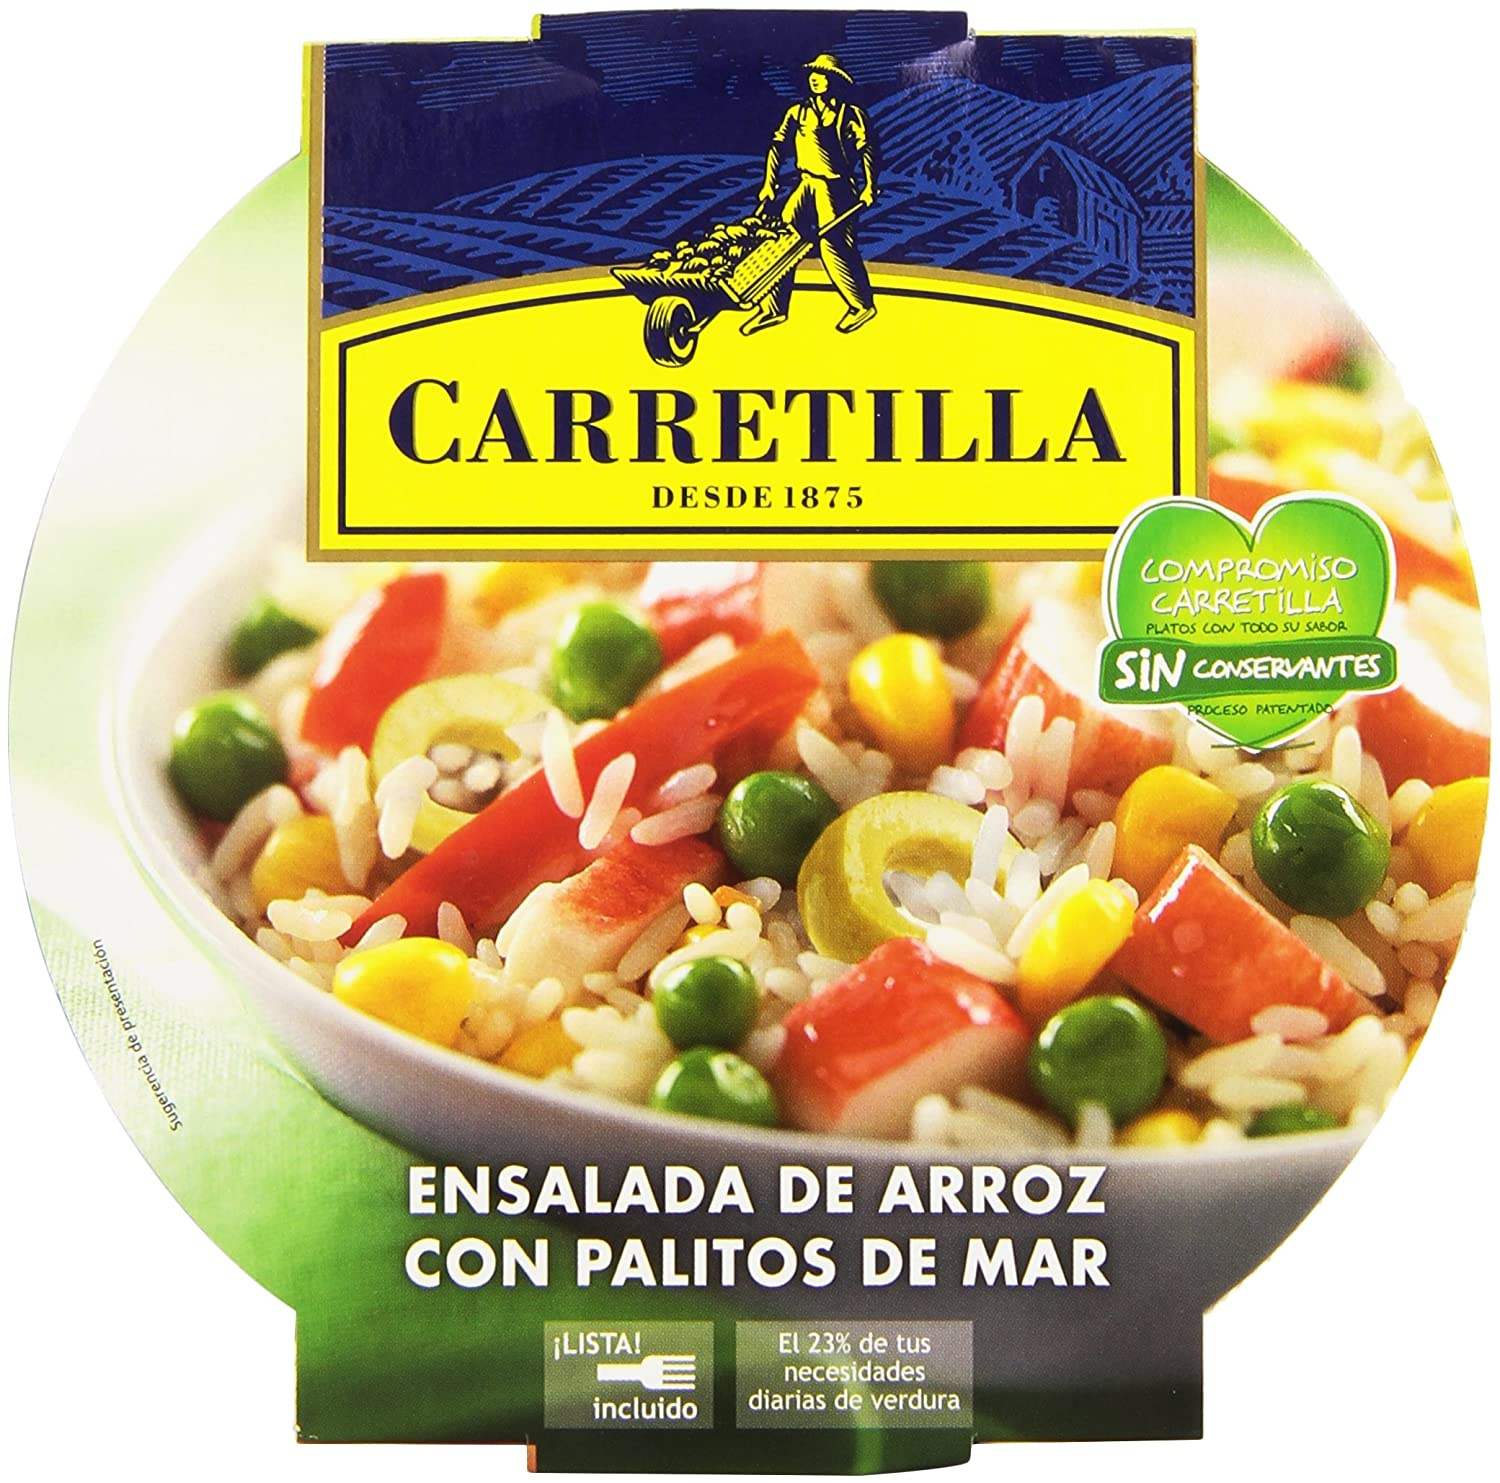 Carretilla Ensalada de Arroz con Palitos de Mar - 240 g: Amazon.es: Amazon Pantry